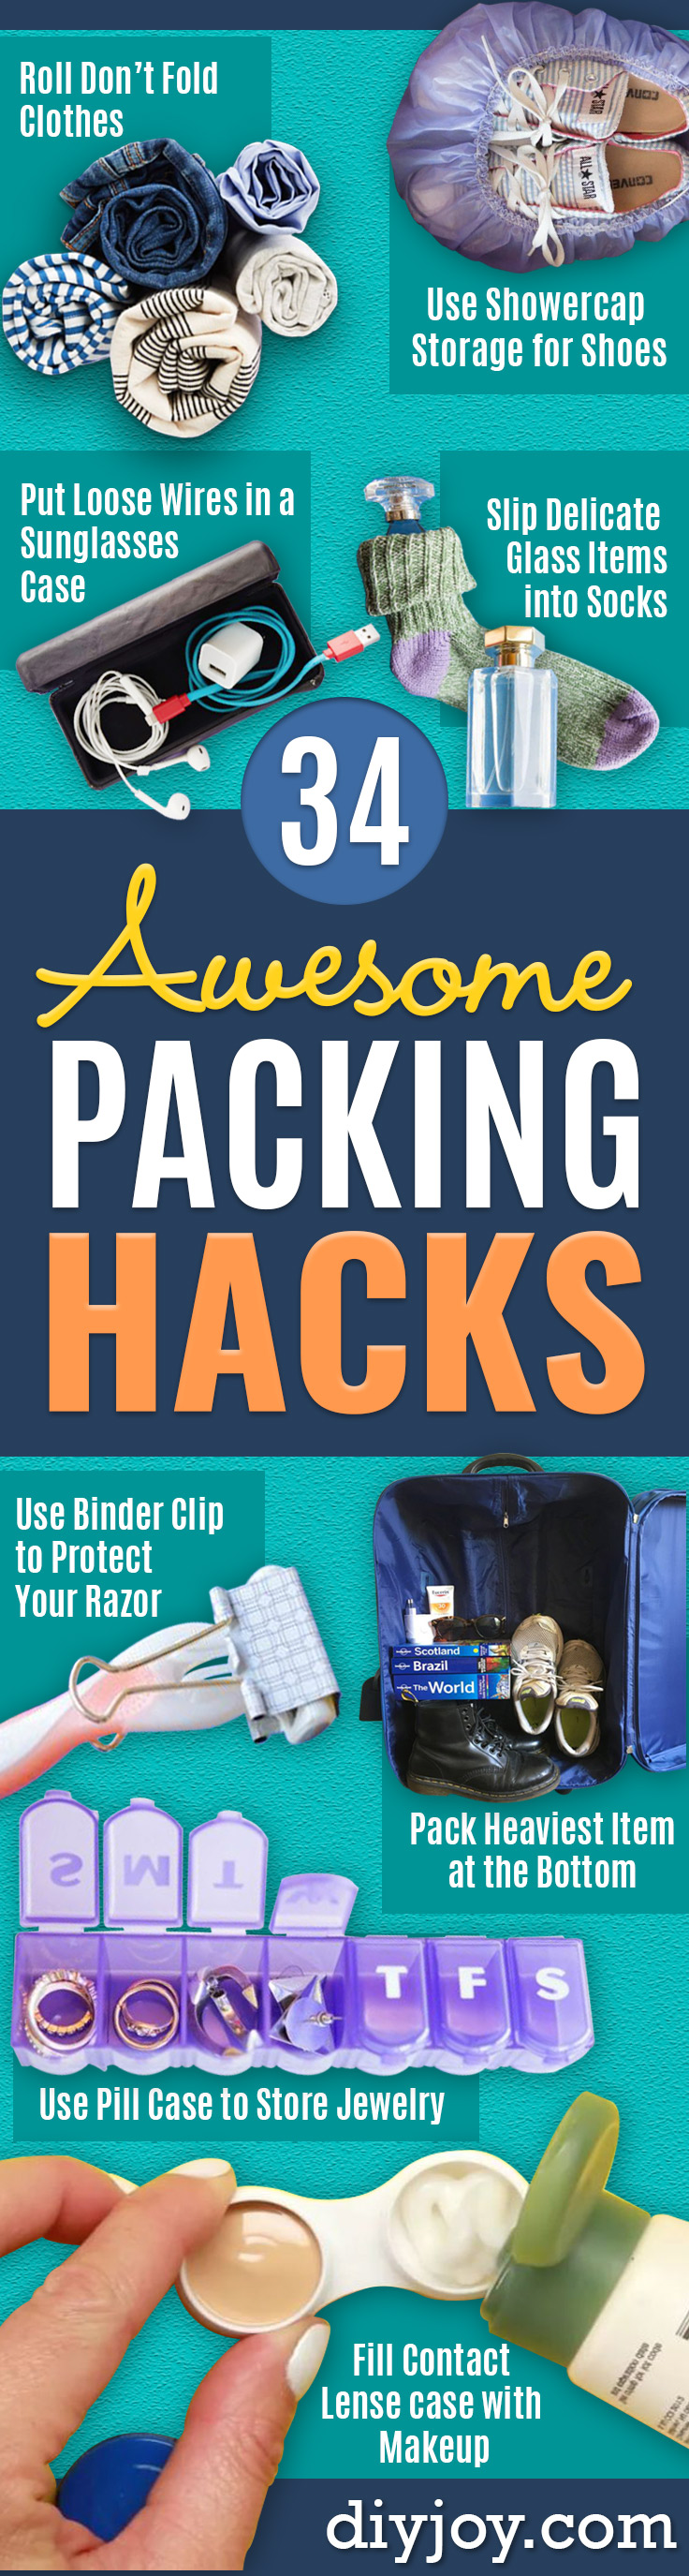 Packing Hacks for Travel - How to Pack and Fold Clothes, Save Space in Suitcase - Tips and Tricks for Shoes, Makeup, Toiletries, Carry On Luggage for Trips